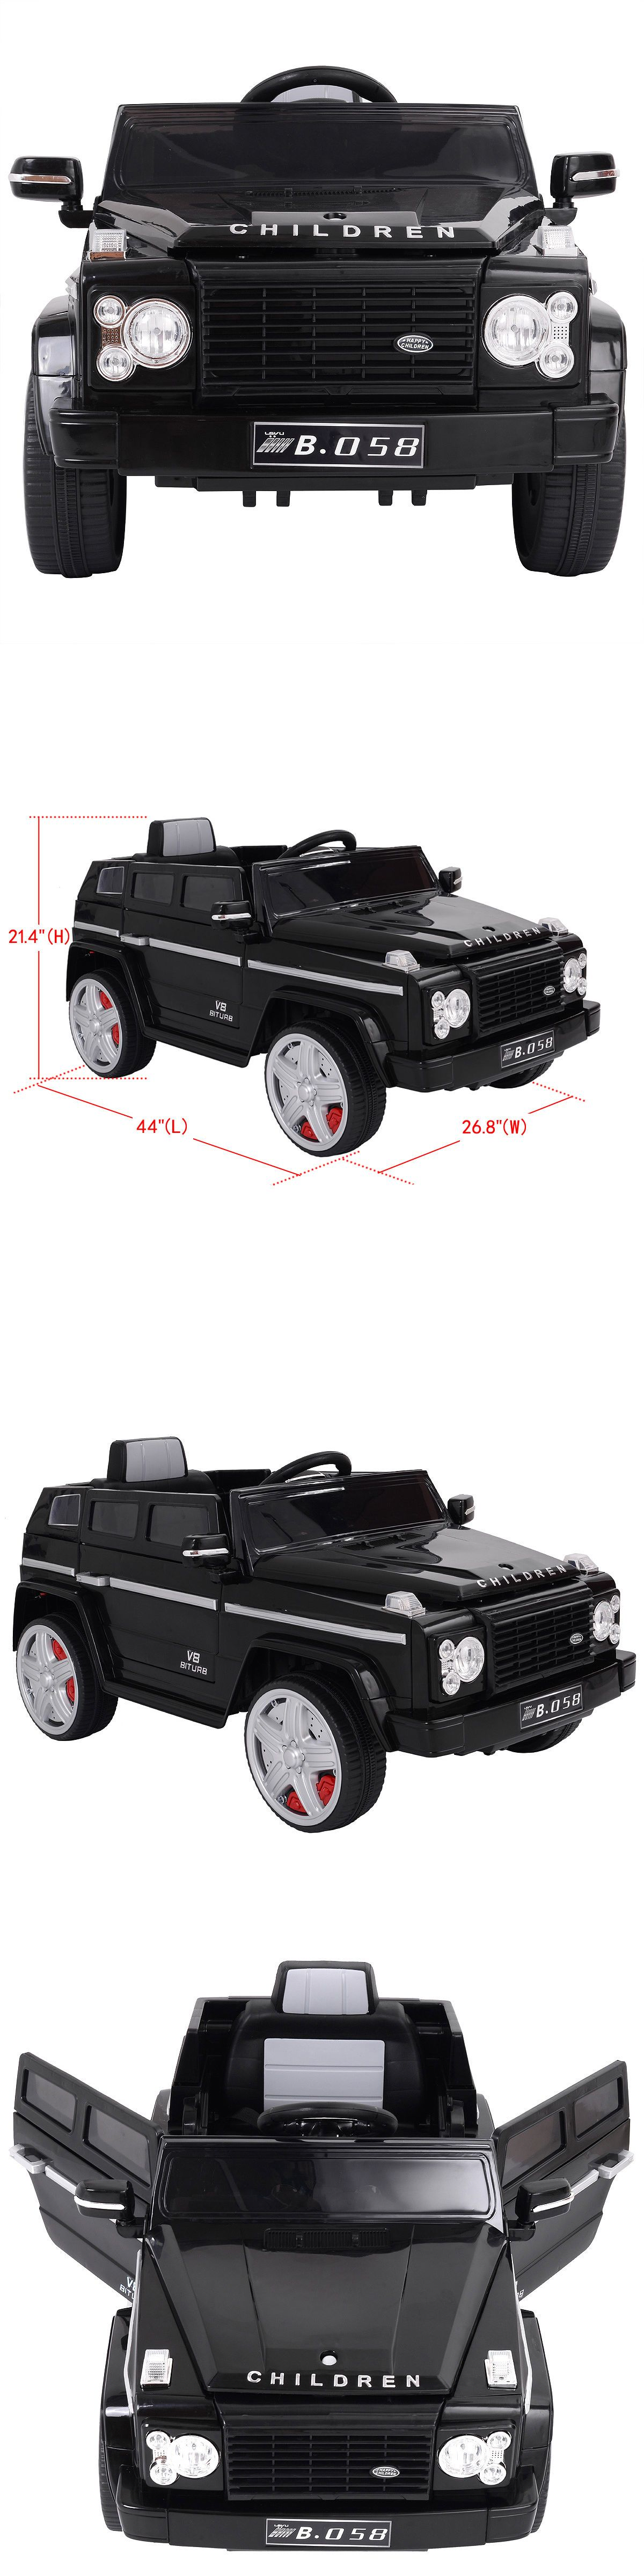 Battery Operated 19072 12v Mp3 Kids Ride On Car Battery Rc Remote